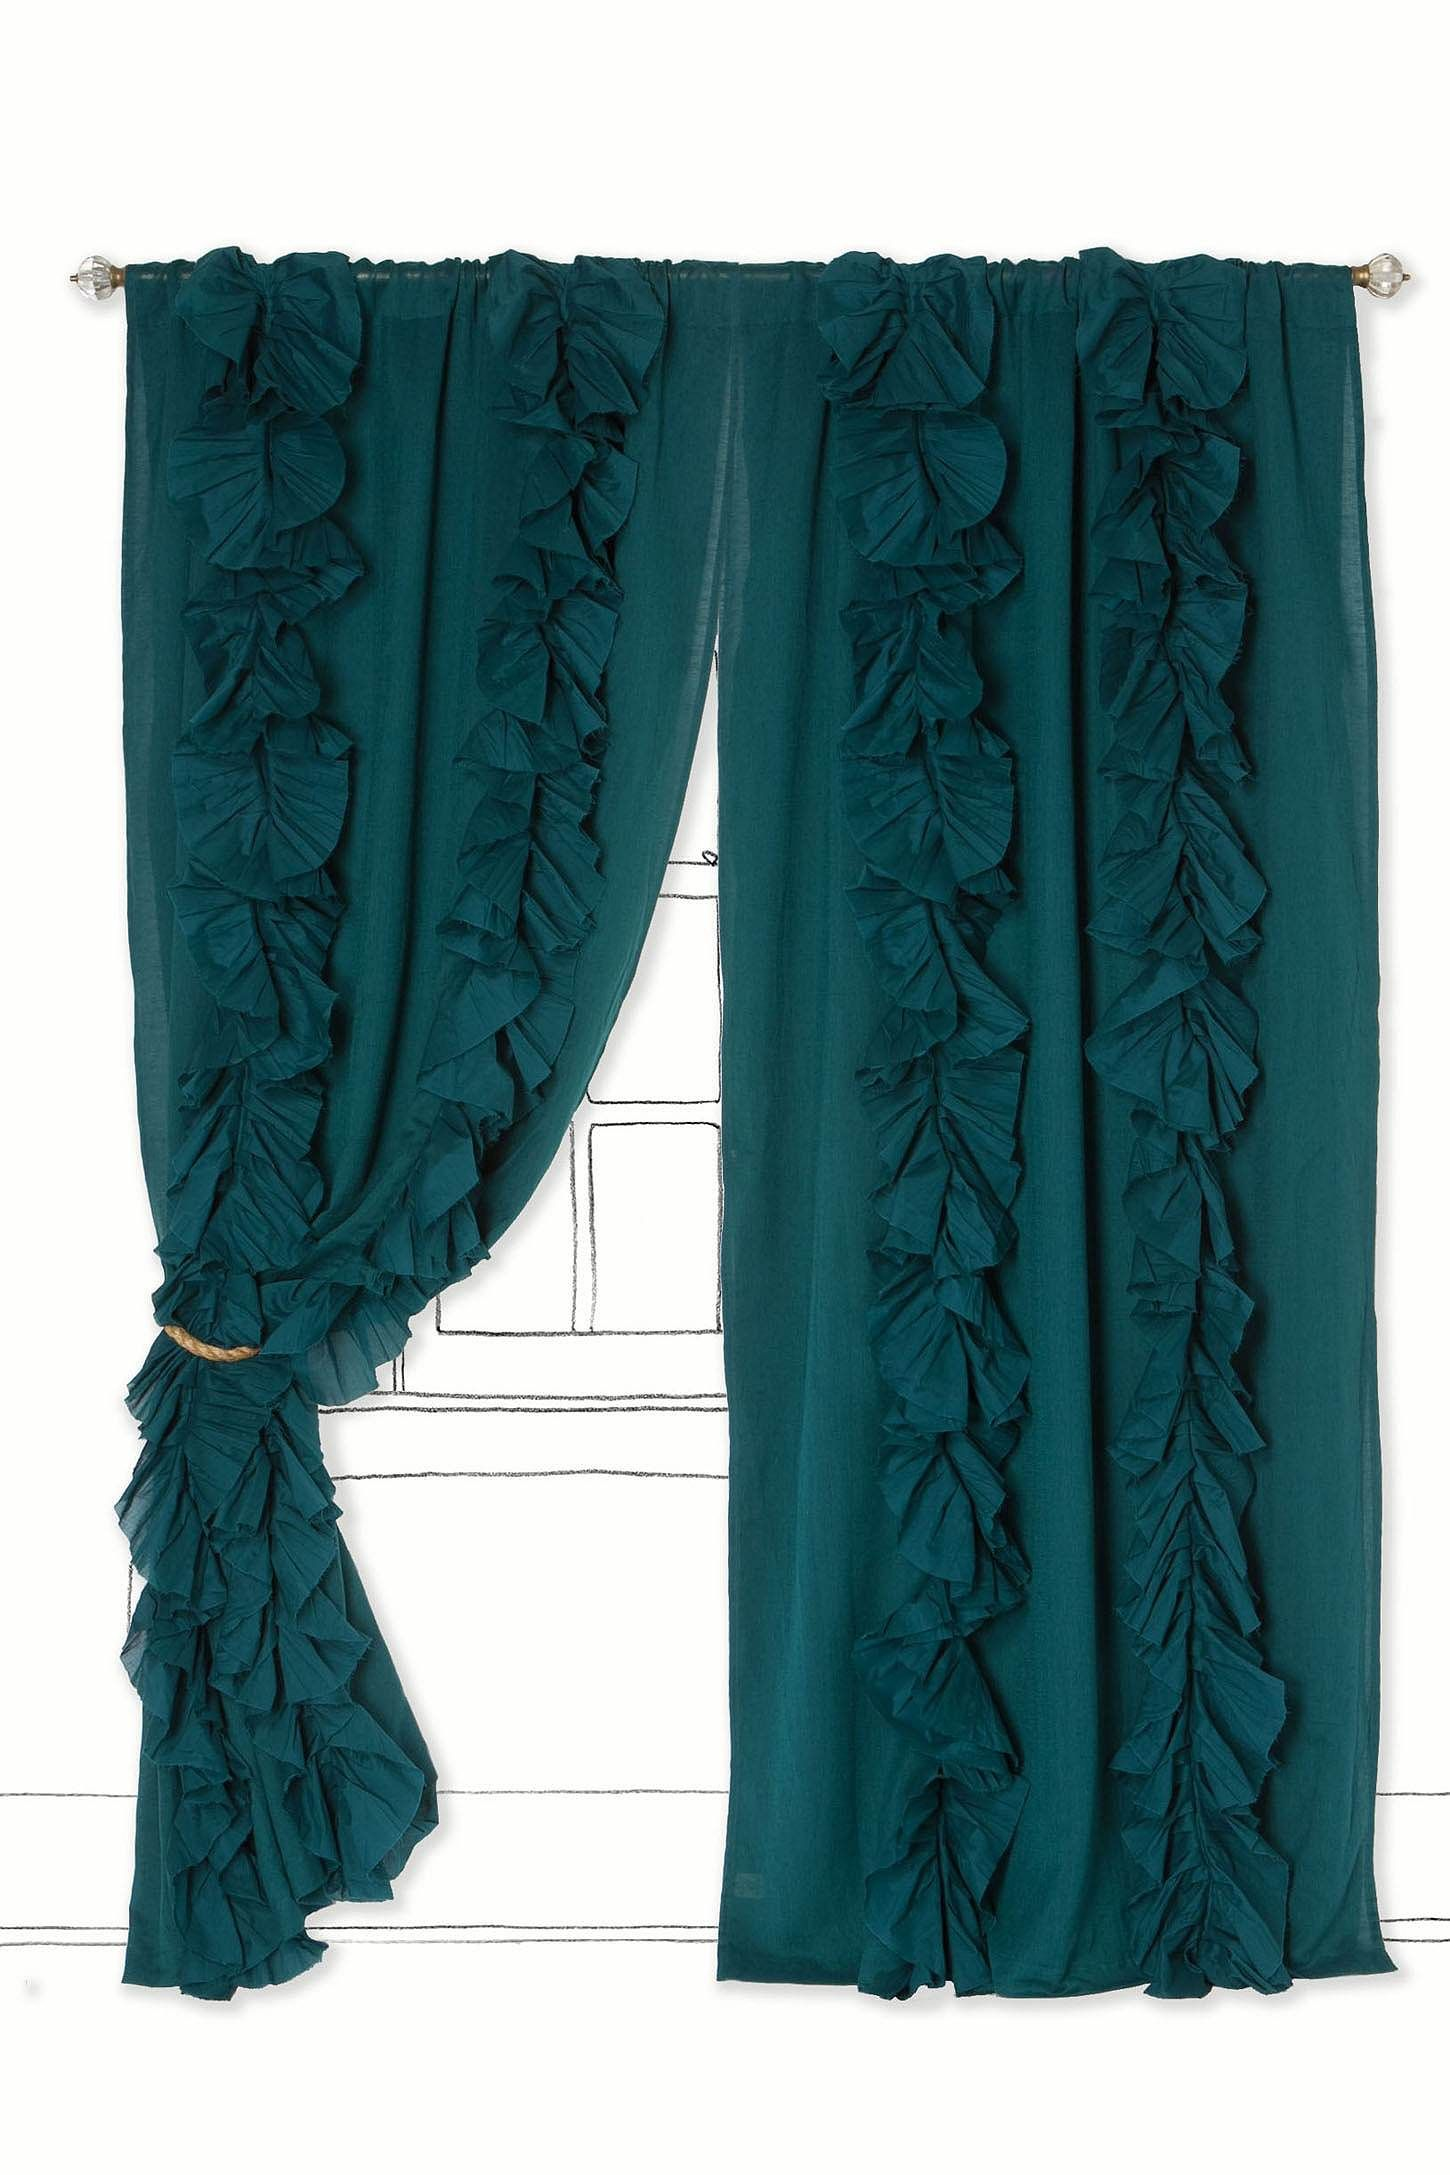 Wandering Pleats Curtain   Pleated curtains, Teal curtains and ... for Dark Turquoise Curtains  83fiz